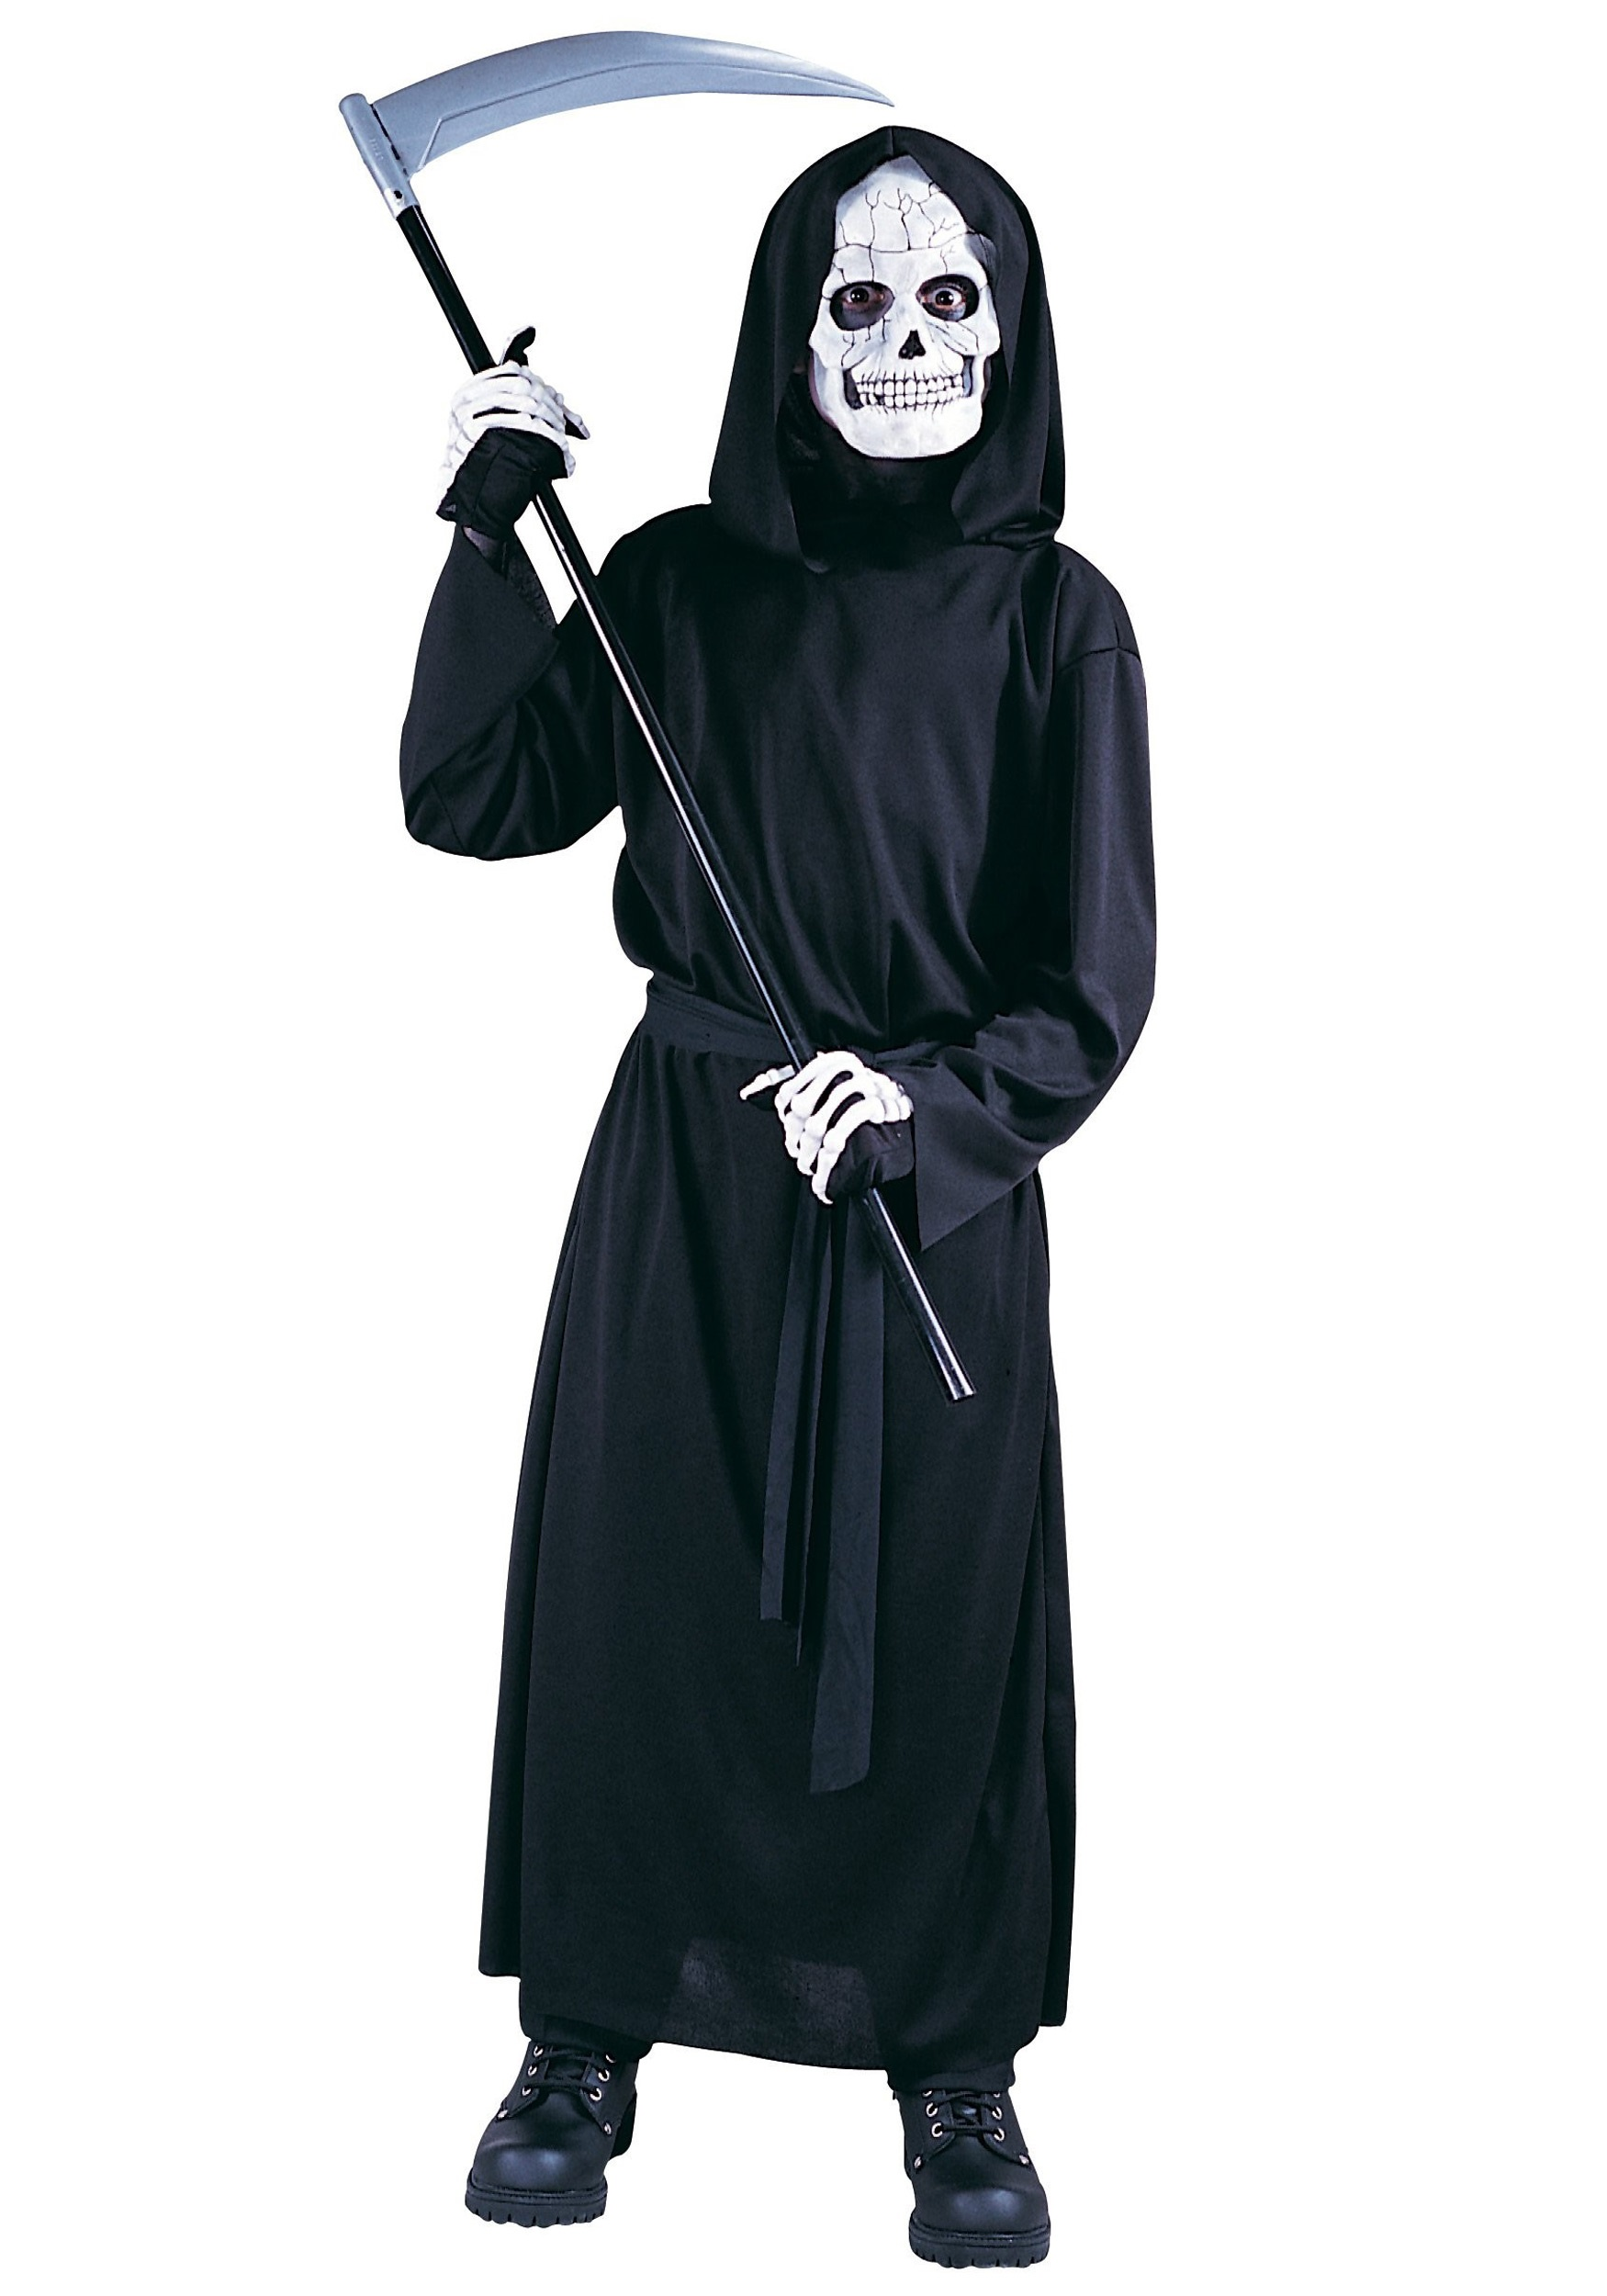 Halloween Costumes For Kids Scary.Scary Child Reaper Costume